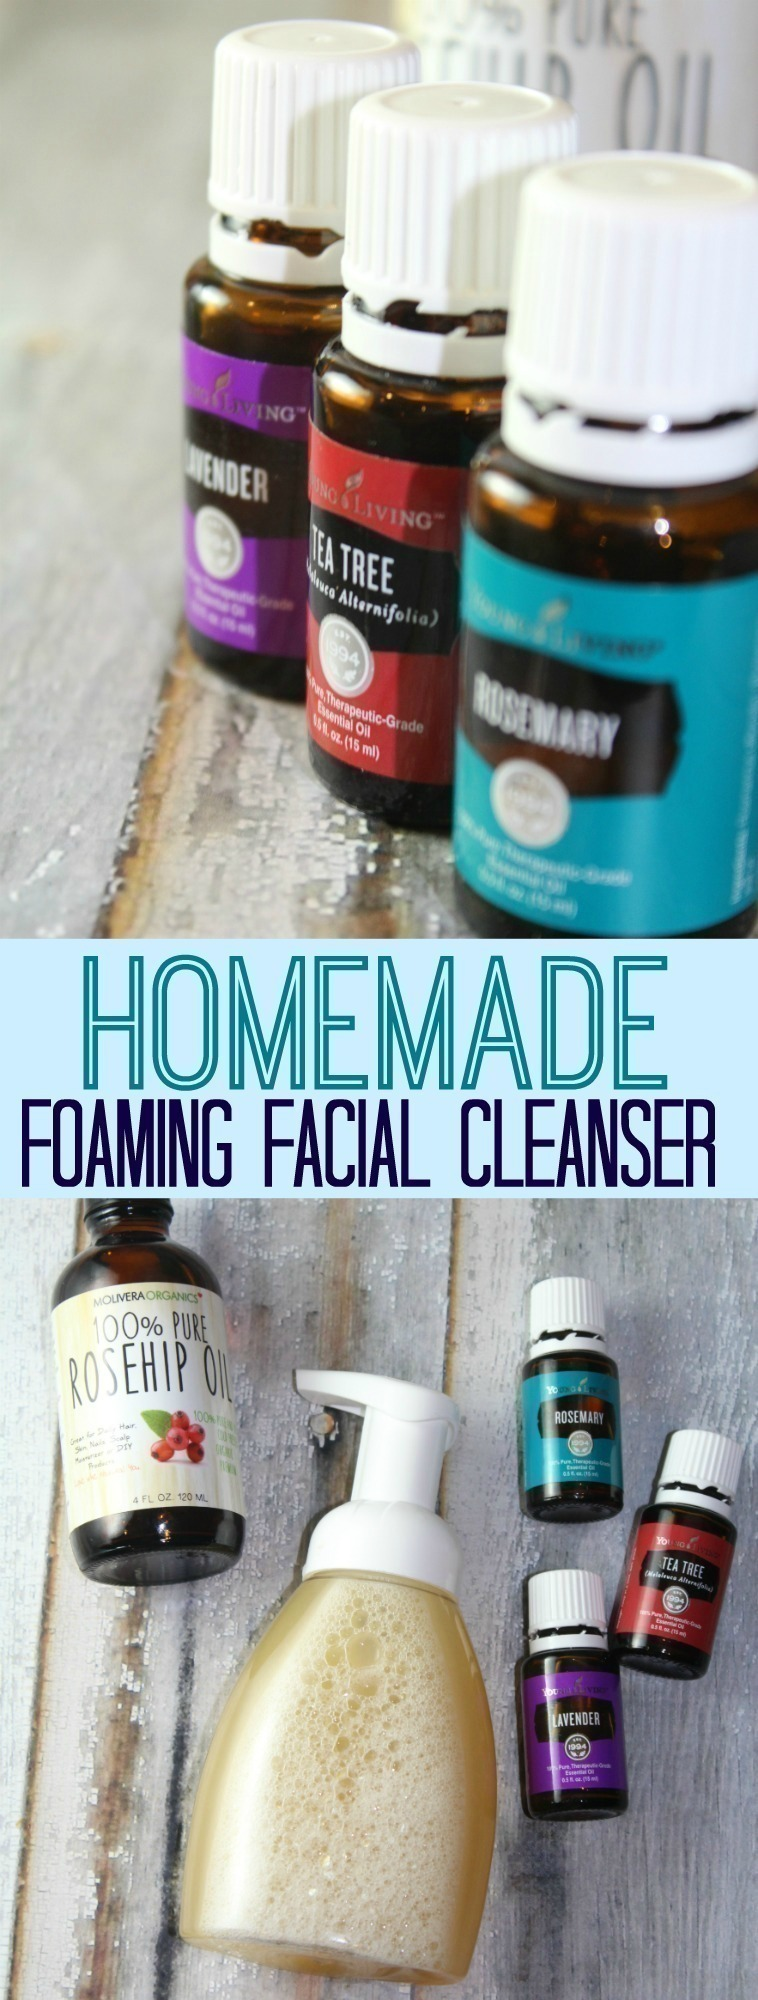 Homemade Foaming Facial Cleanser